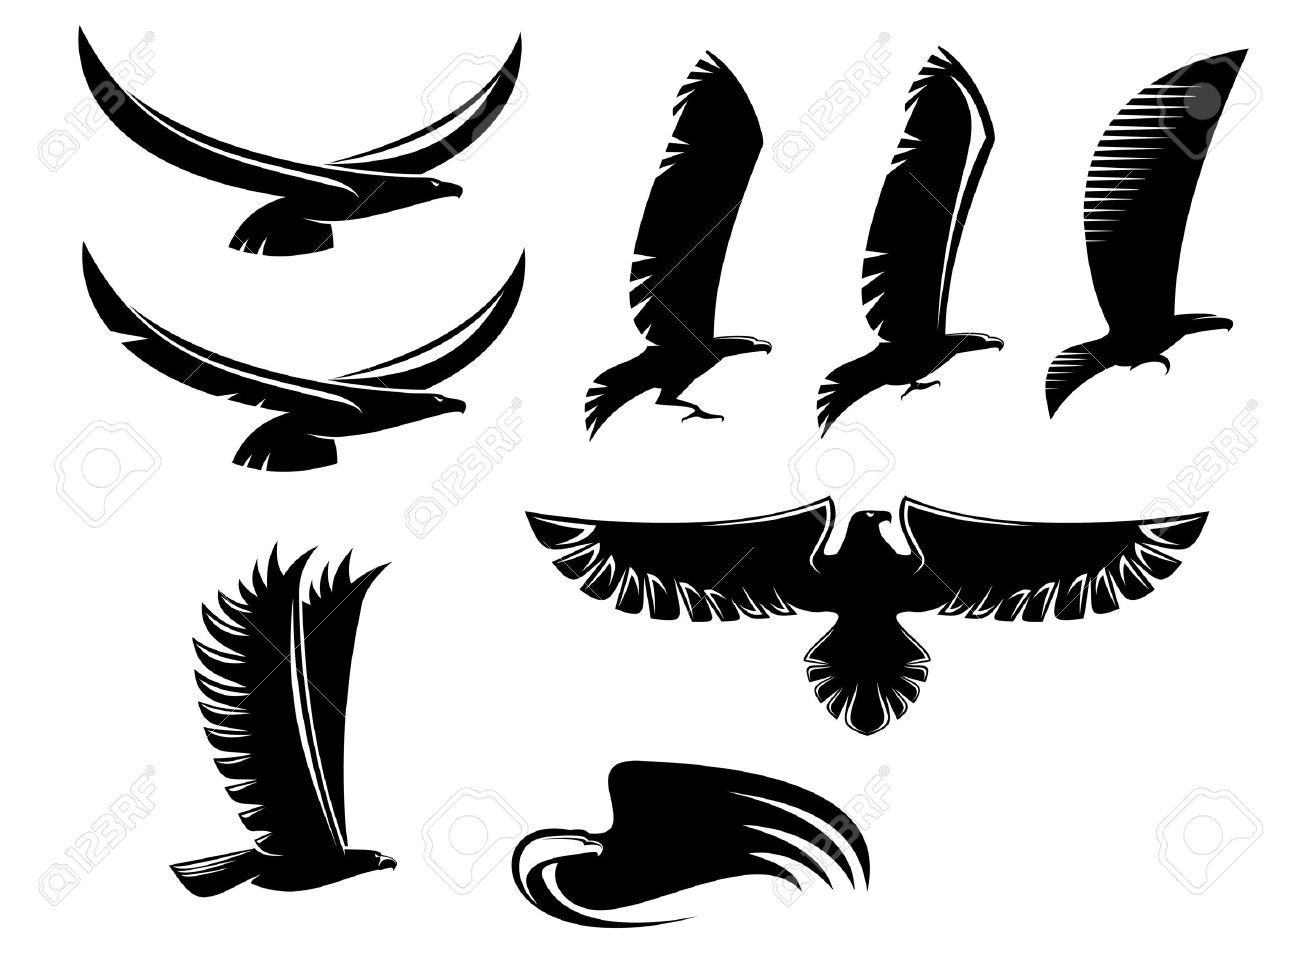 Set of heraldry black birds for tattoo or mascot design royalty free set of heraldry black birds for tattoo or mascot design stock vector 13443025 biocorpaavc Choice Image